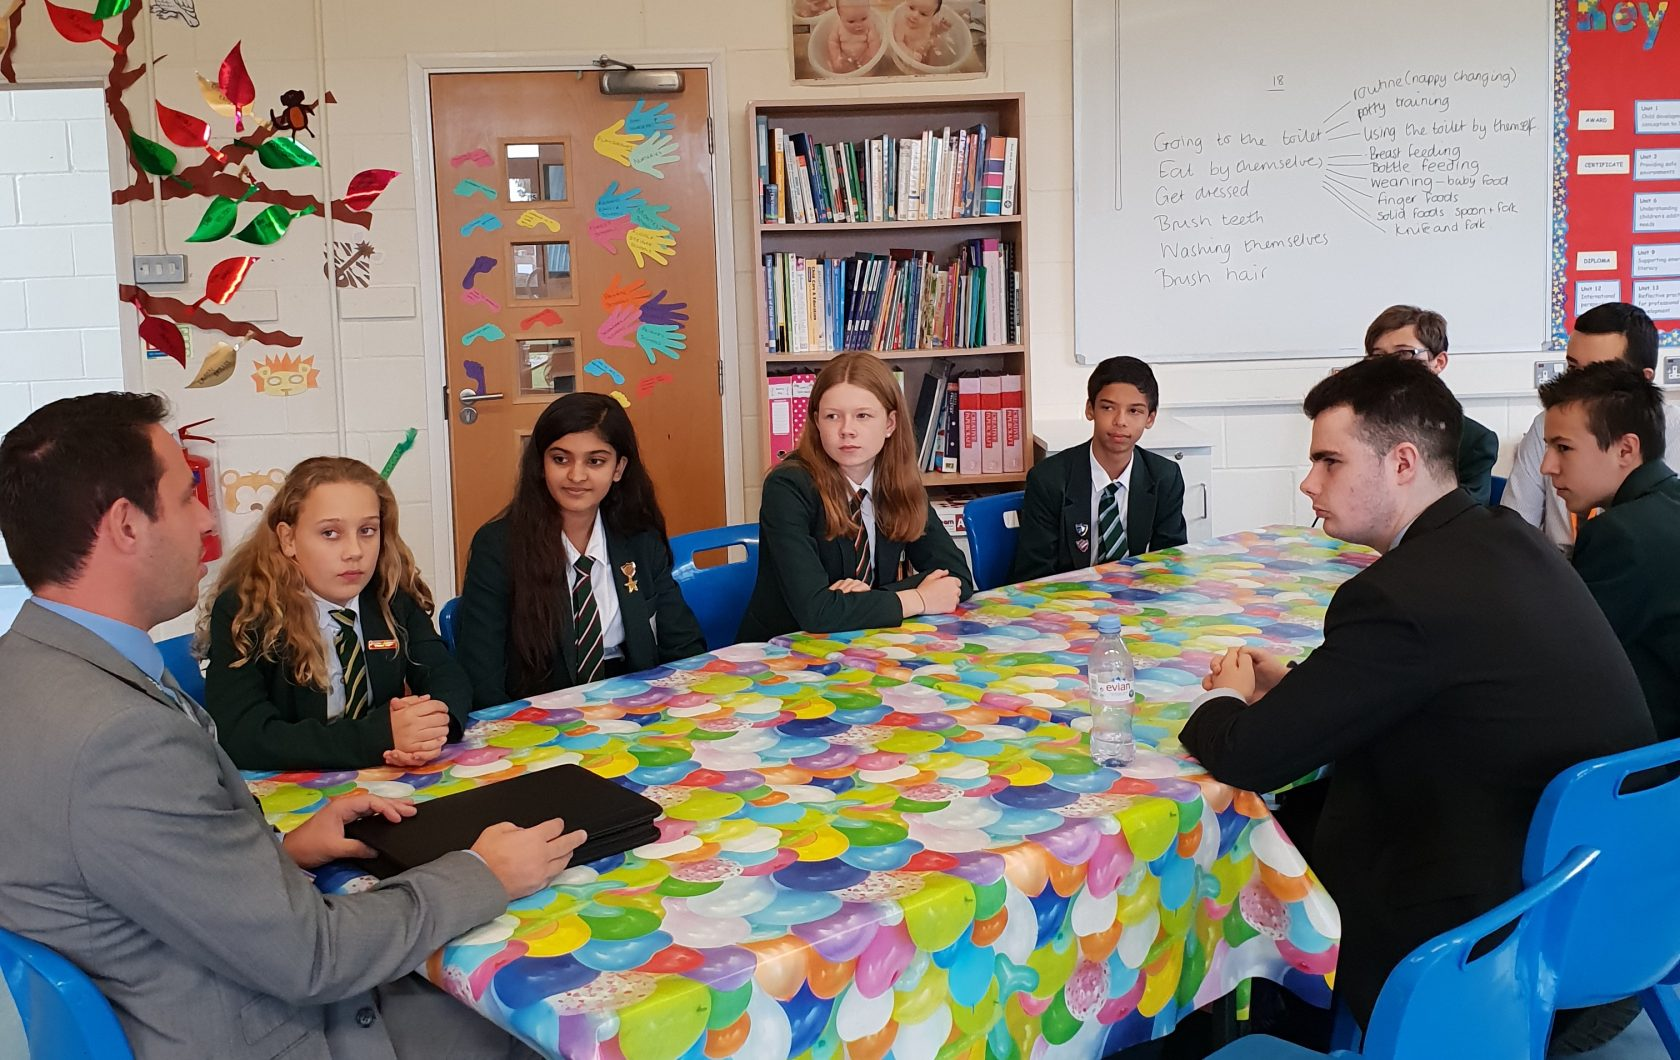 Assistant Headteacher – Rob Tester from West Hatch High School visits our School